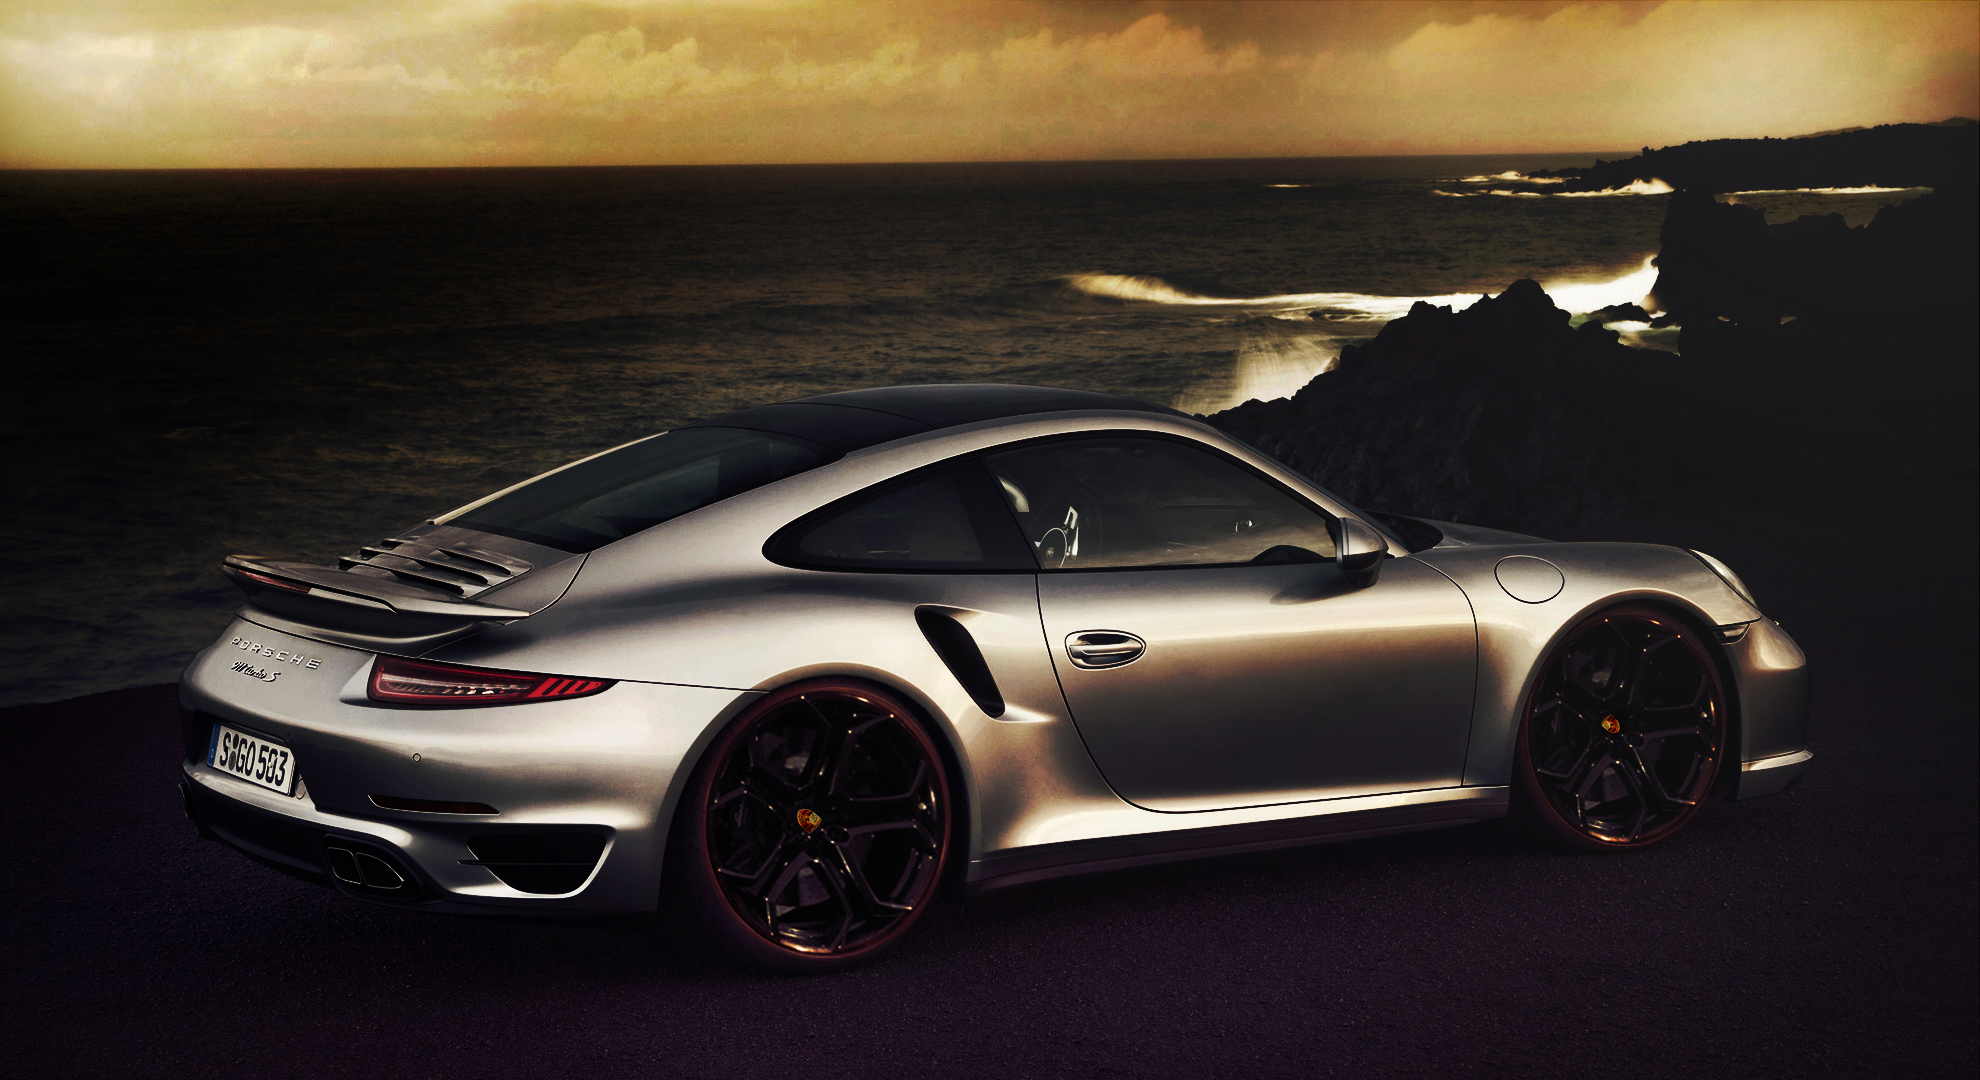 porsche 911 turbo s wallpaper by gfxy